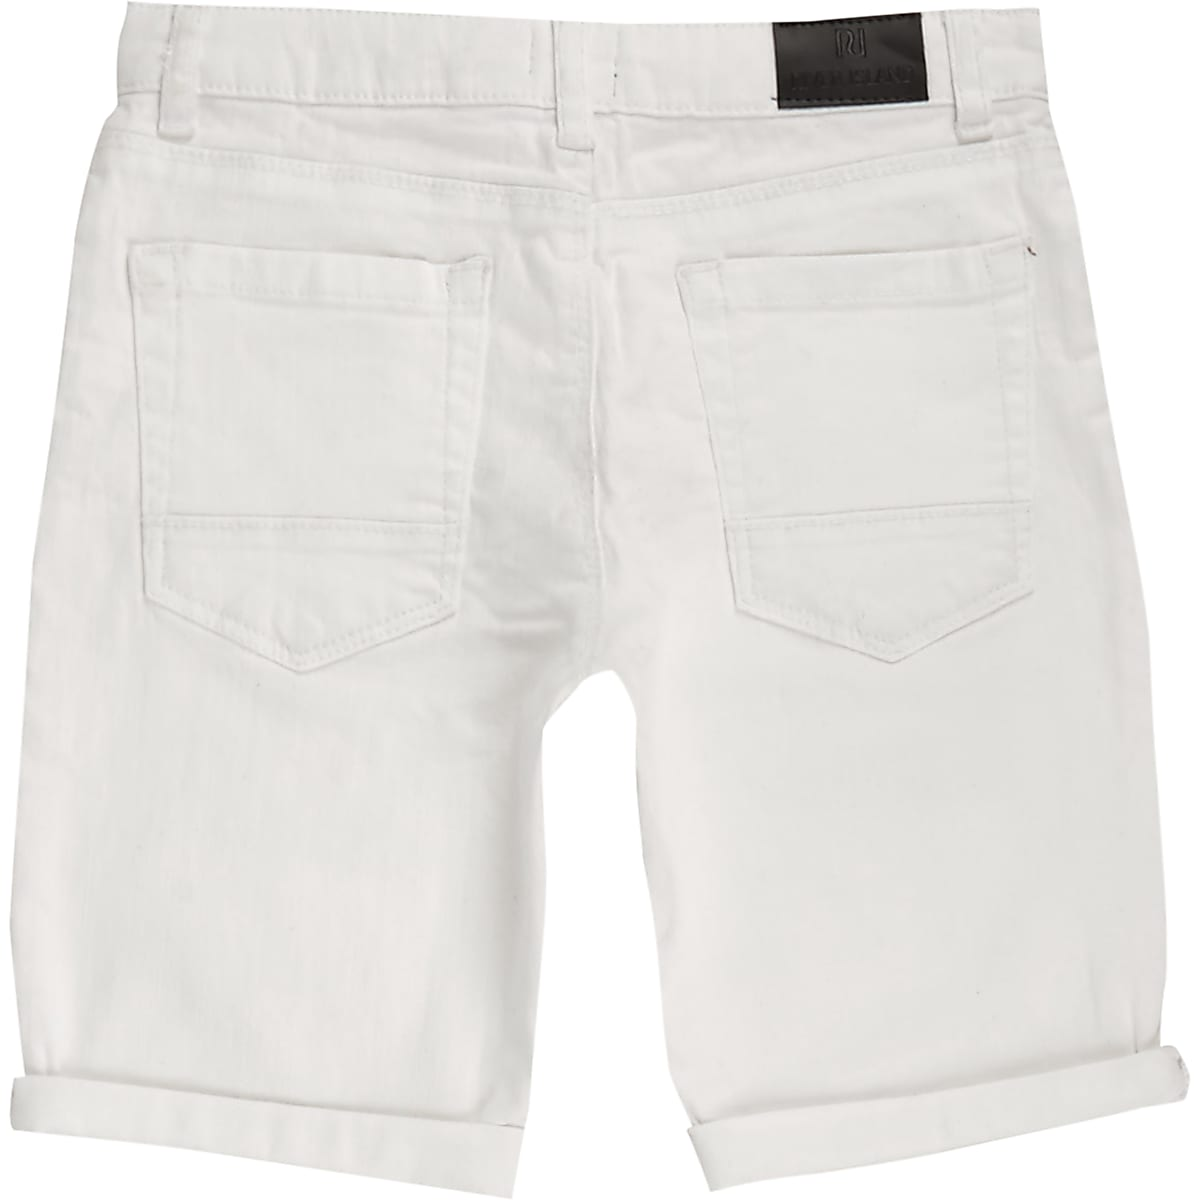 85c2a53f64 Boys white ripped denim shorts - Denim Shorts - Shorts - boys